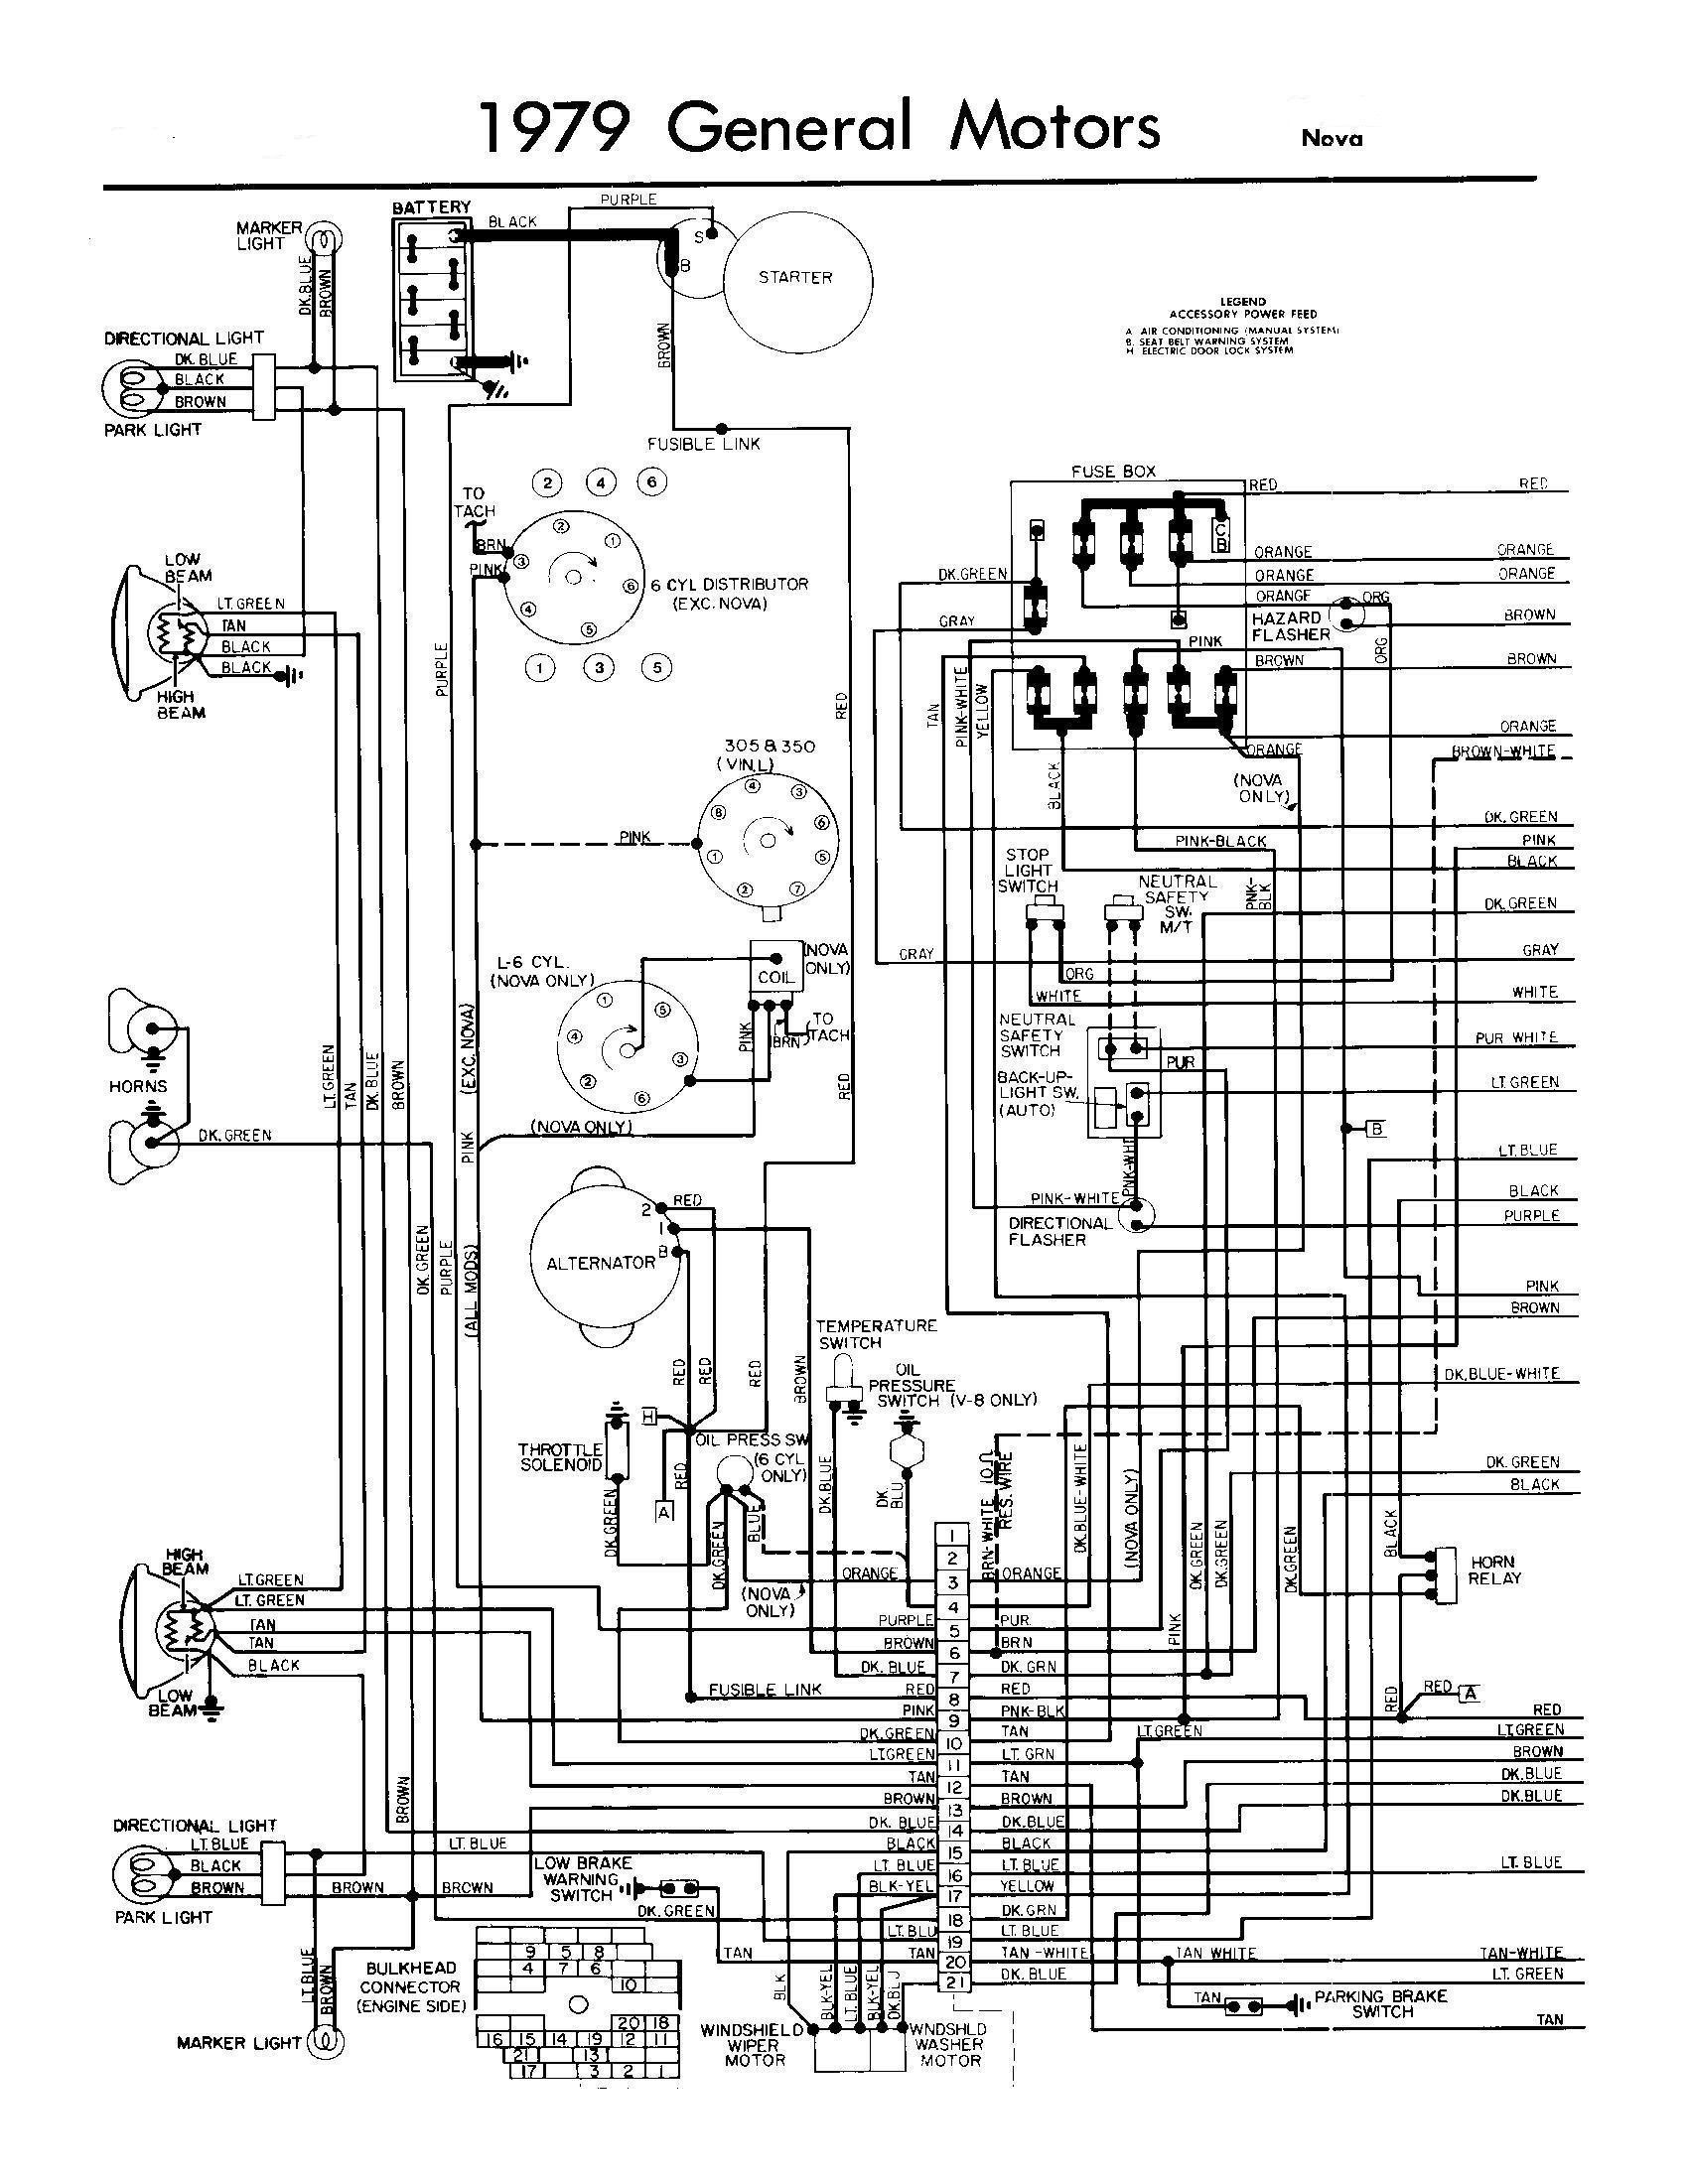 Computer Wiring Diagram Gmg Body Not Lossing Power Supply Schematic Diagrams Rh 15 Shareplm De Dell